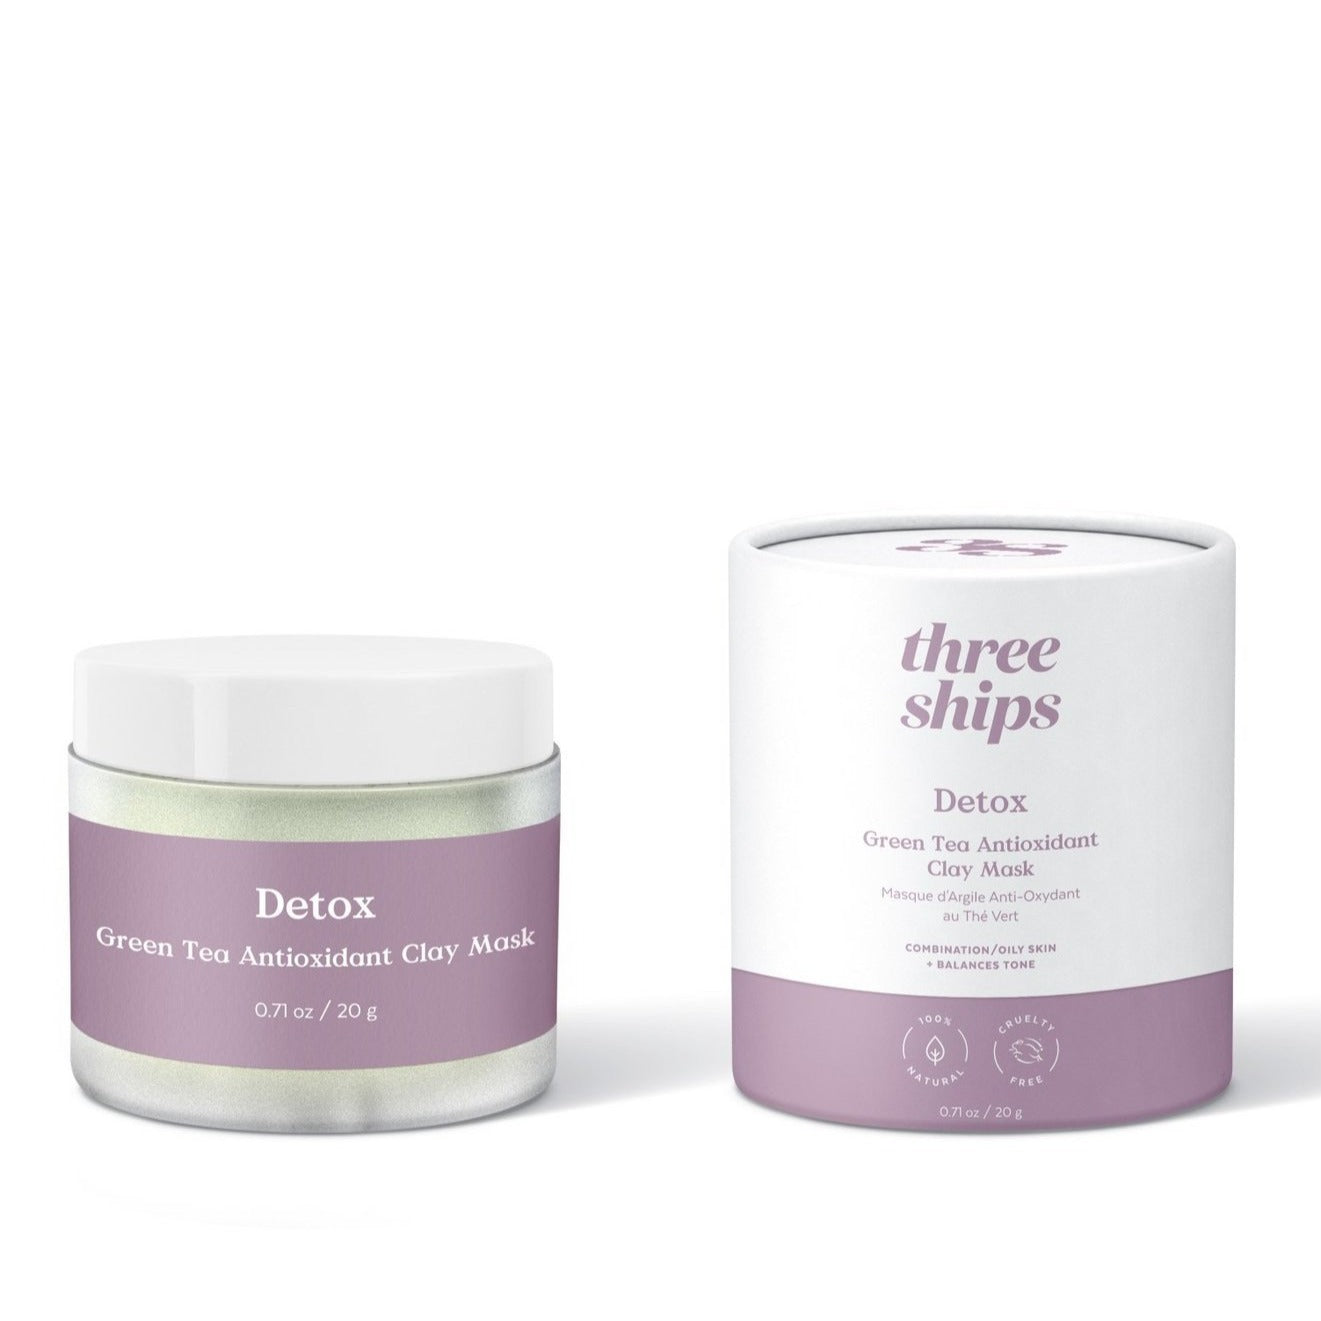 THREE SHIPS - DETOX GREEN TEA ANTIOXIDANT CLAY MASK